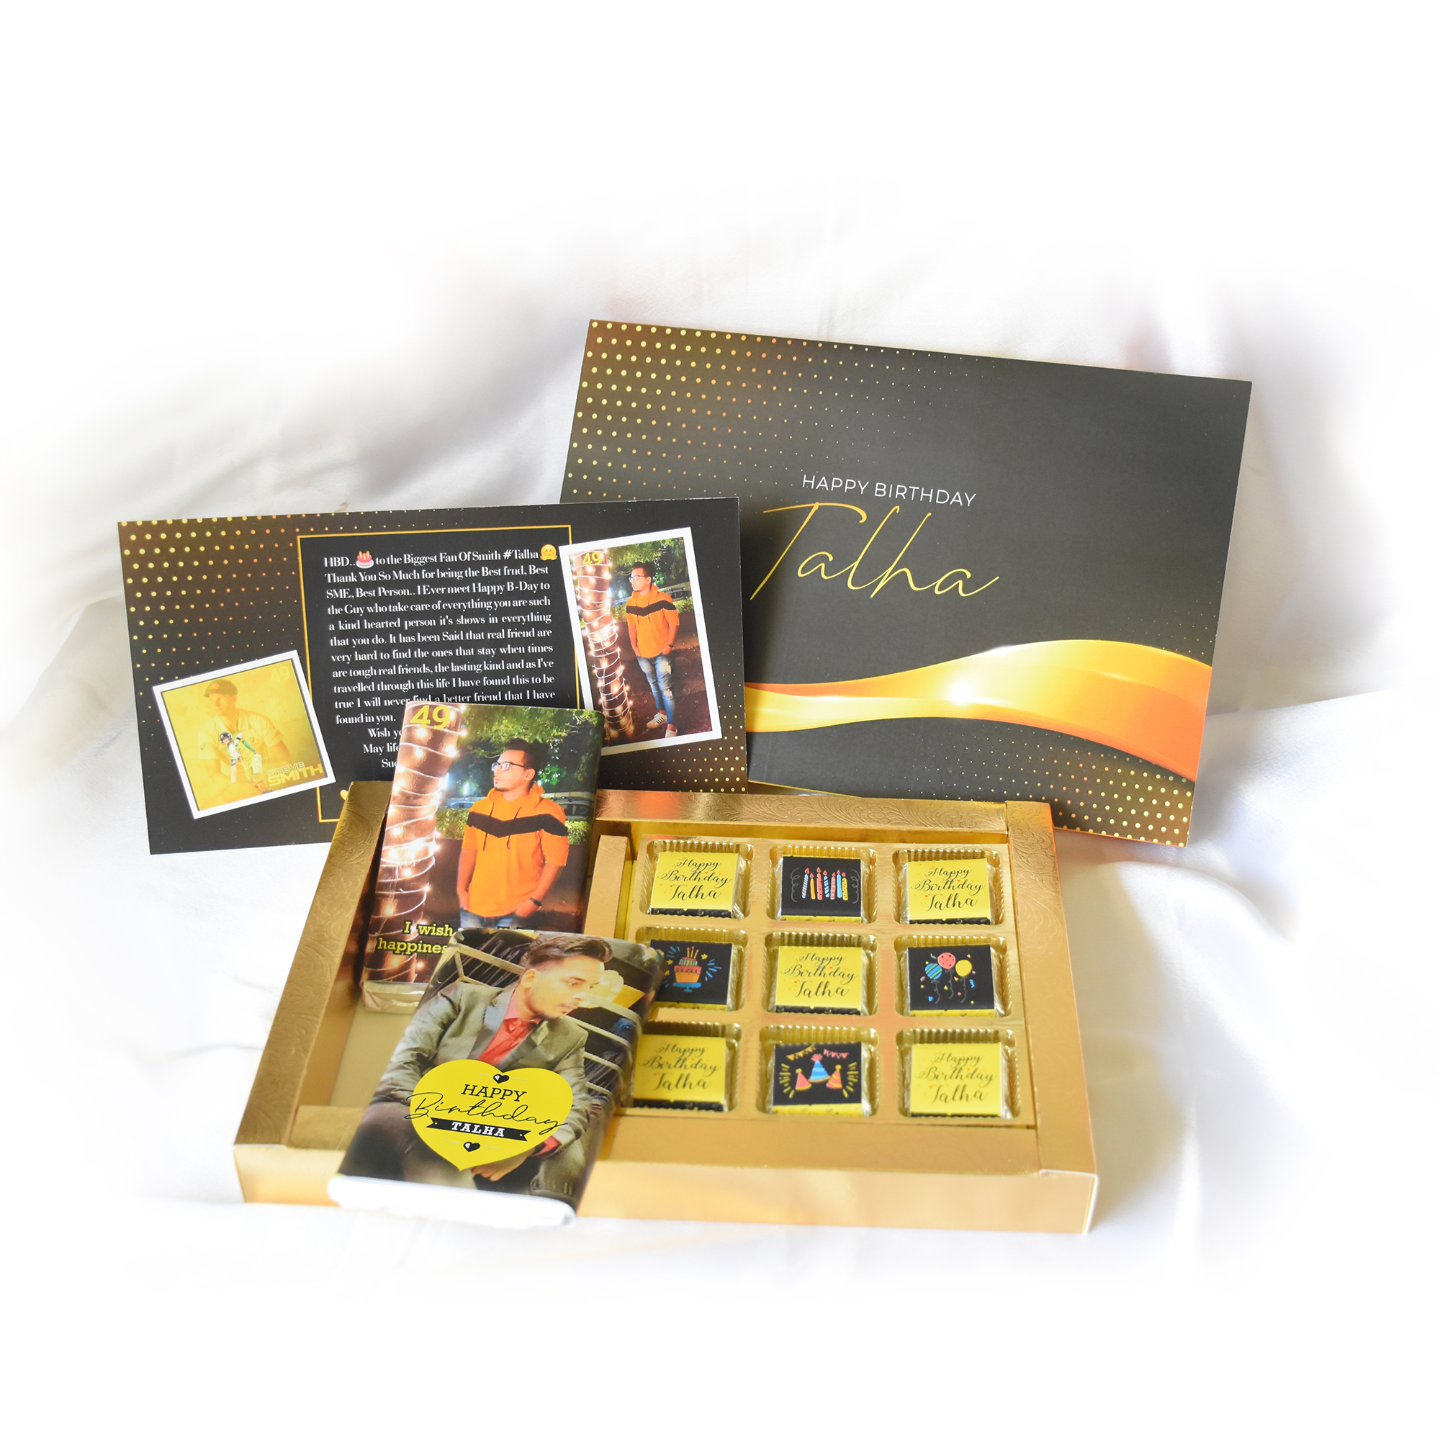 Birthday Gift Box, Personalized Assorted Chocolate (2 Bars + 9 Cubes + Greeting Card)